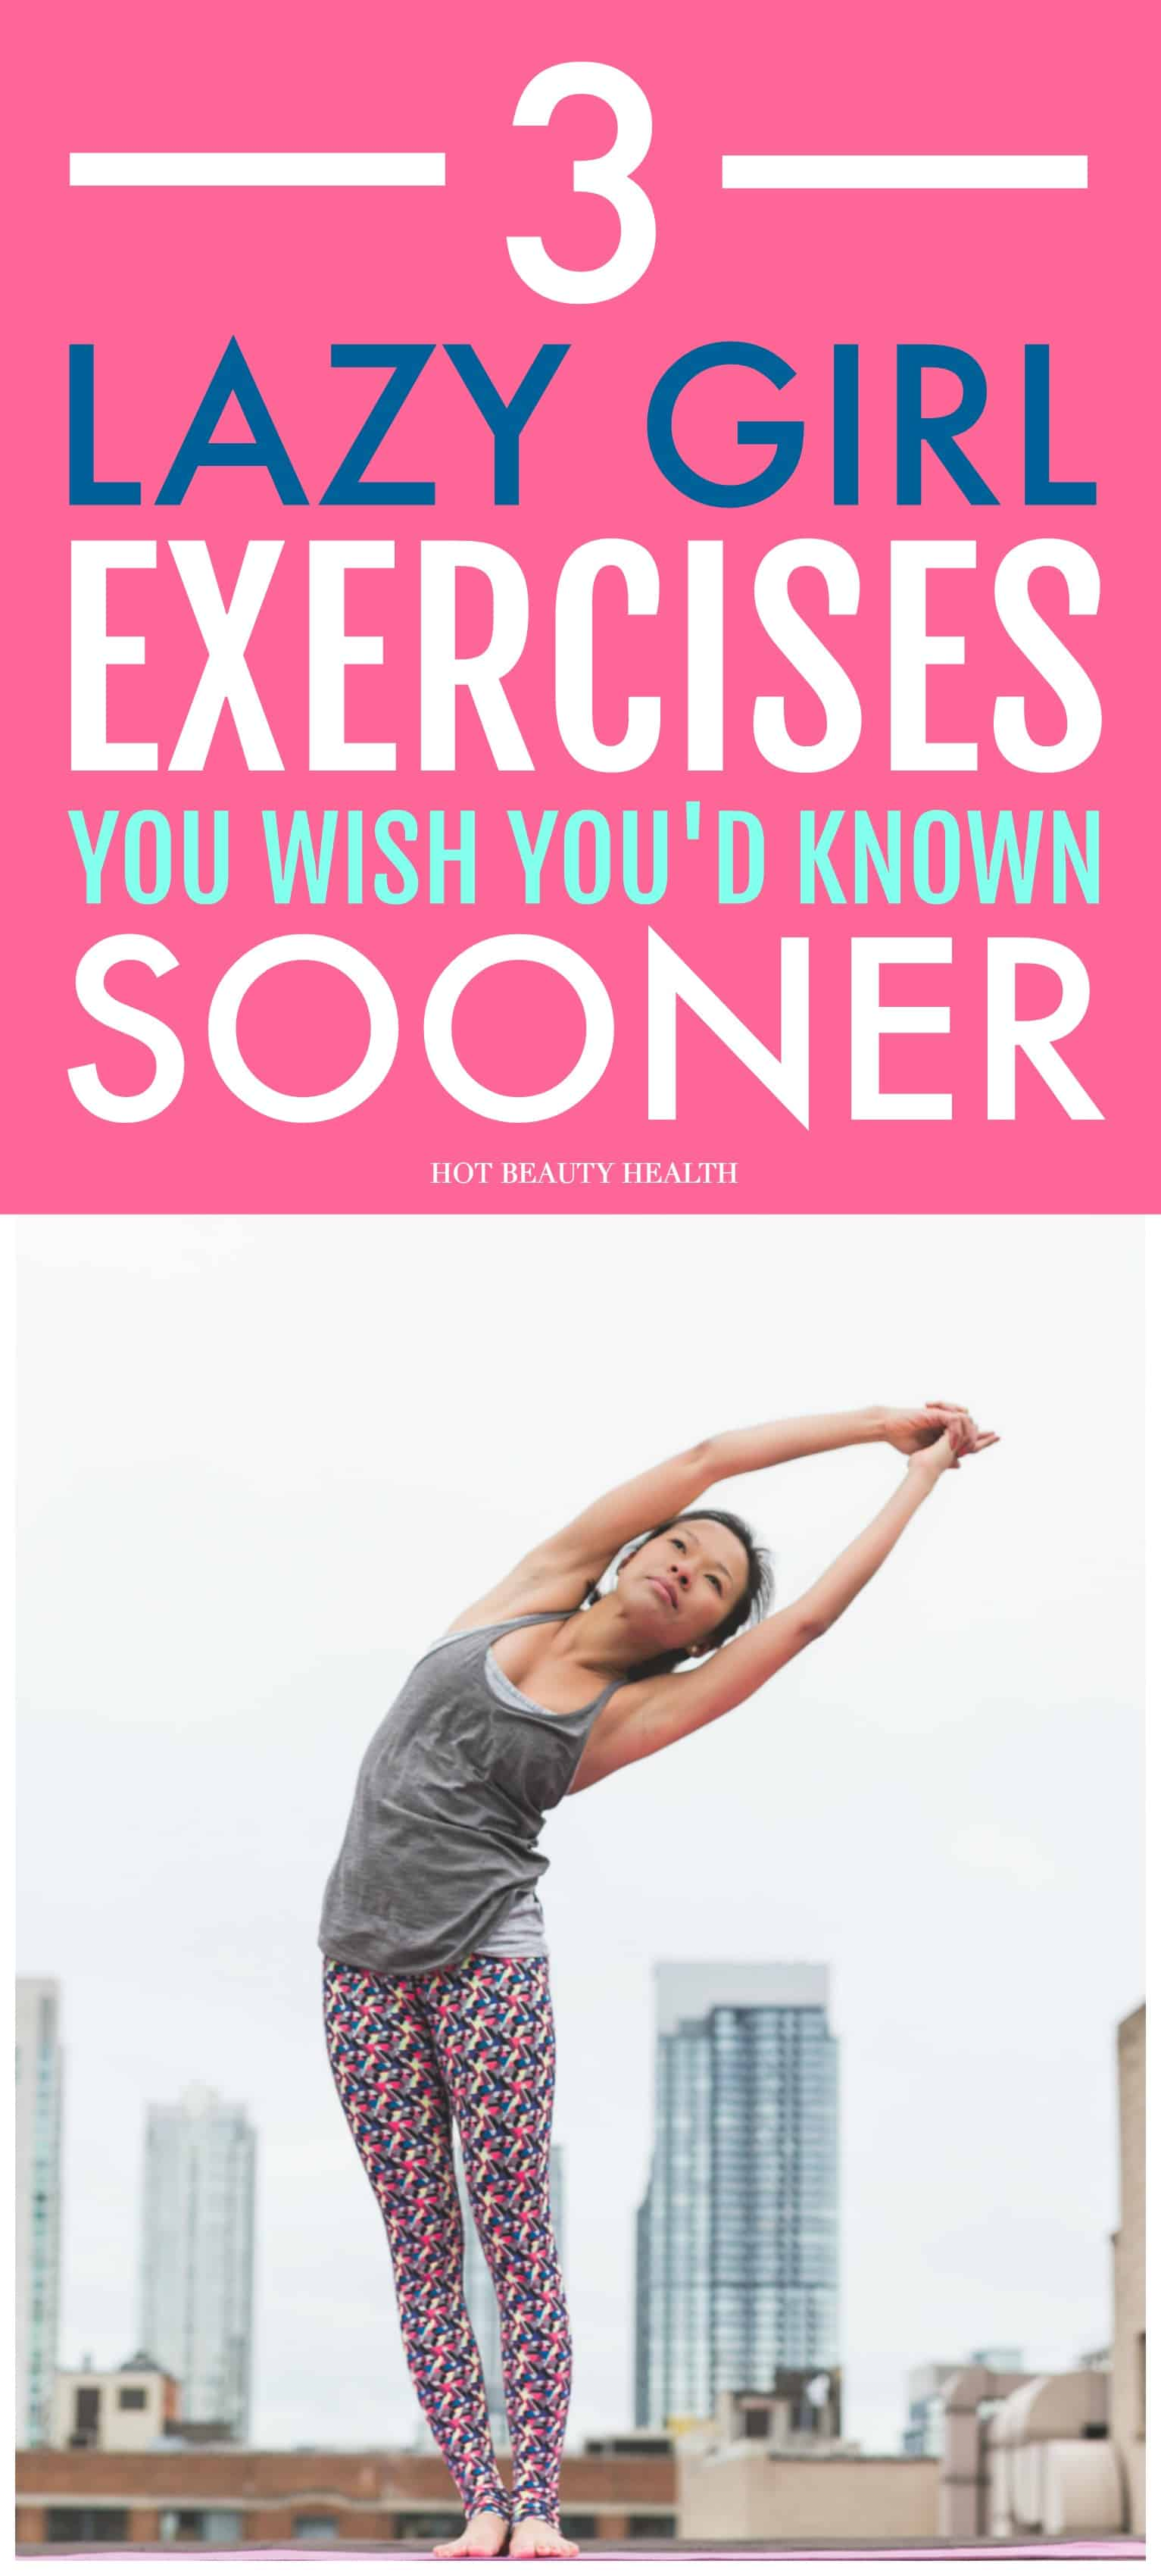 These 3 lazy girl exercises are my favorite way to workout when I'm too tired to go to the gym! You'll definitely start to lose weight with these fat-burning work outs!